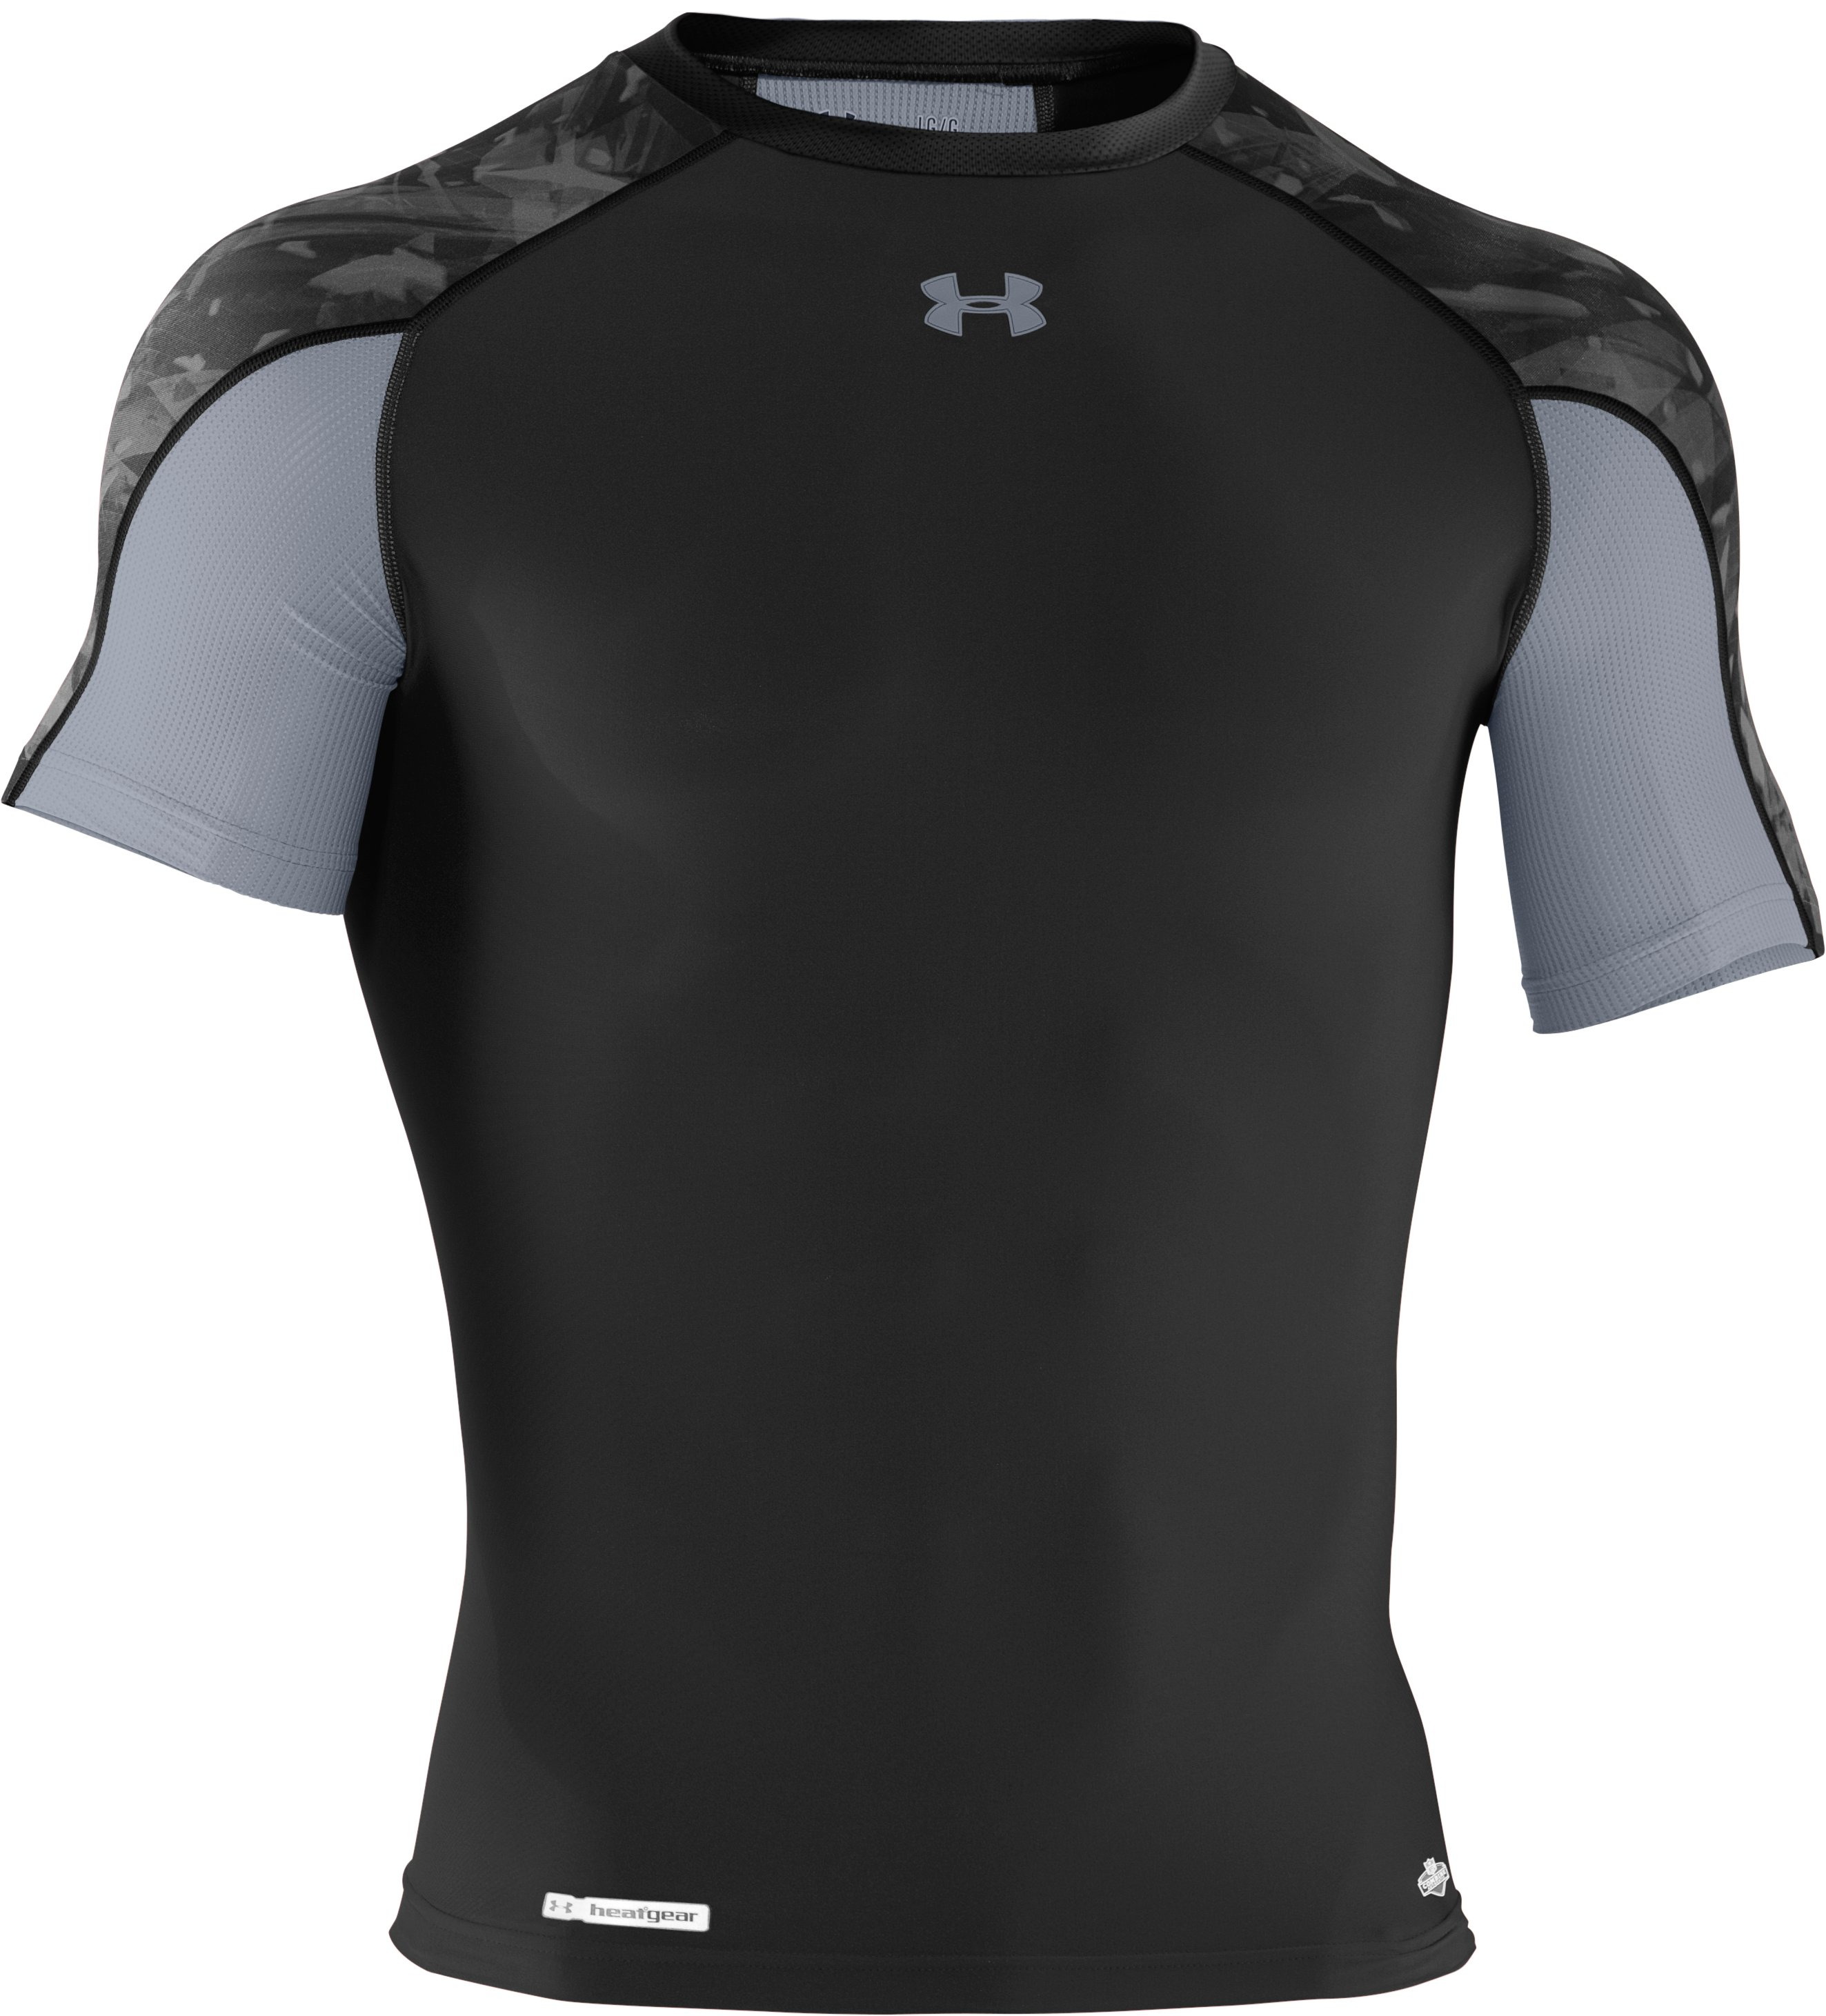 Men's NFL Combine Authentic Compression Short Sleeve, Black , undefined